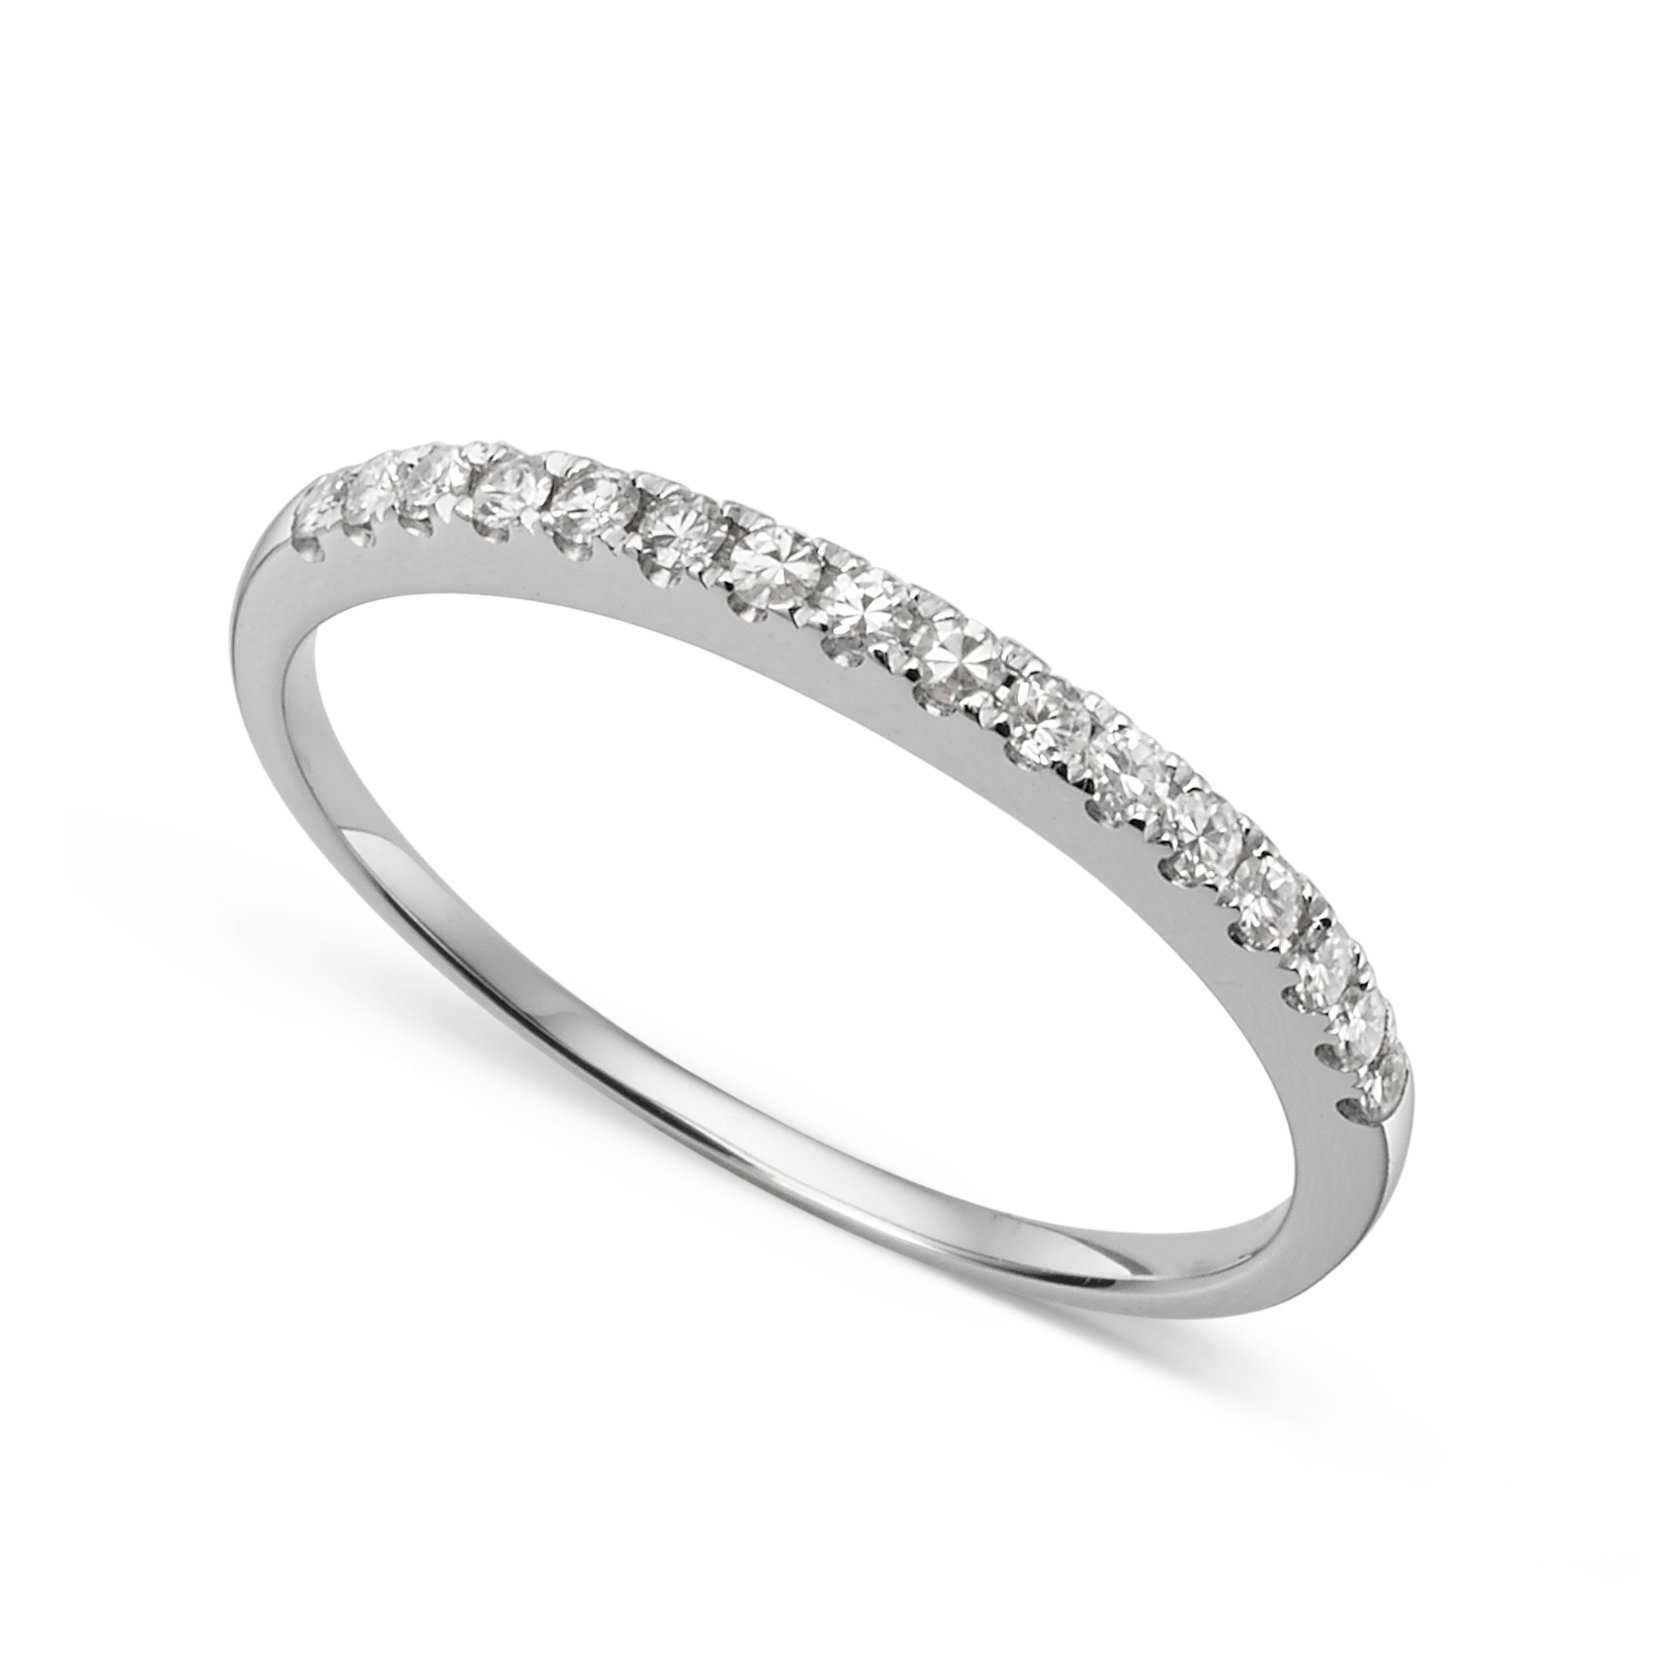 14k White Gold 1.3mm Round Forever Classic Moissanite Wedding Band Ring Size 8 by Charles & Colvard